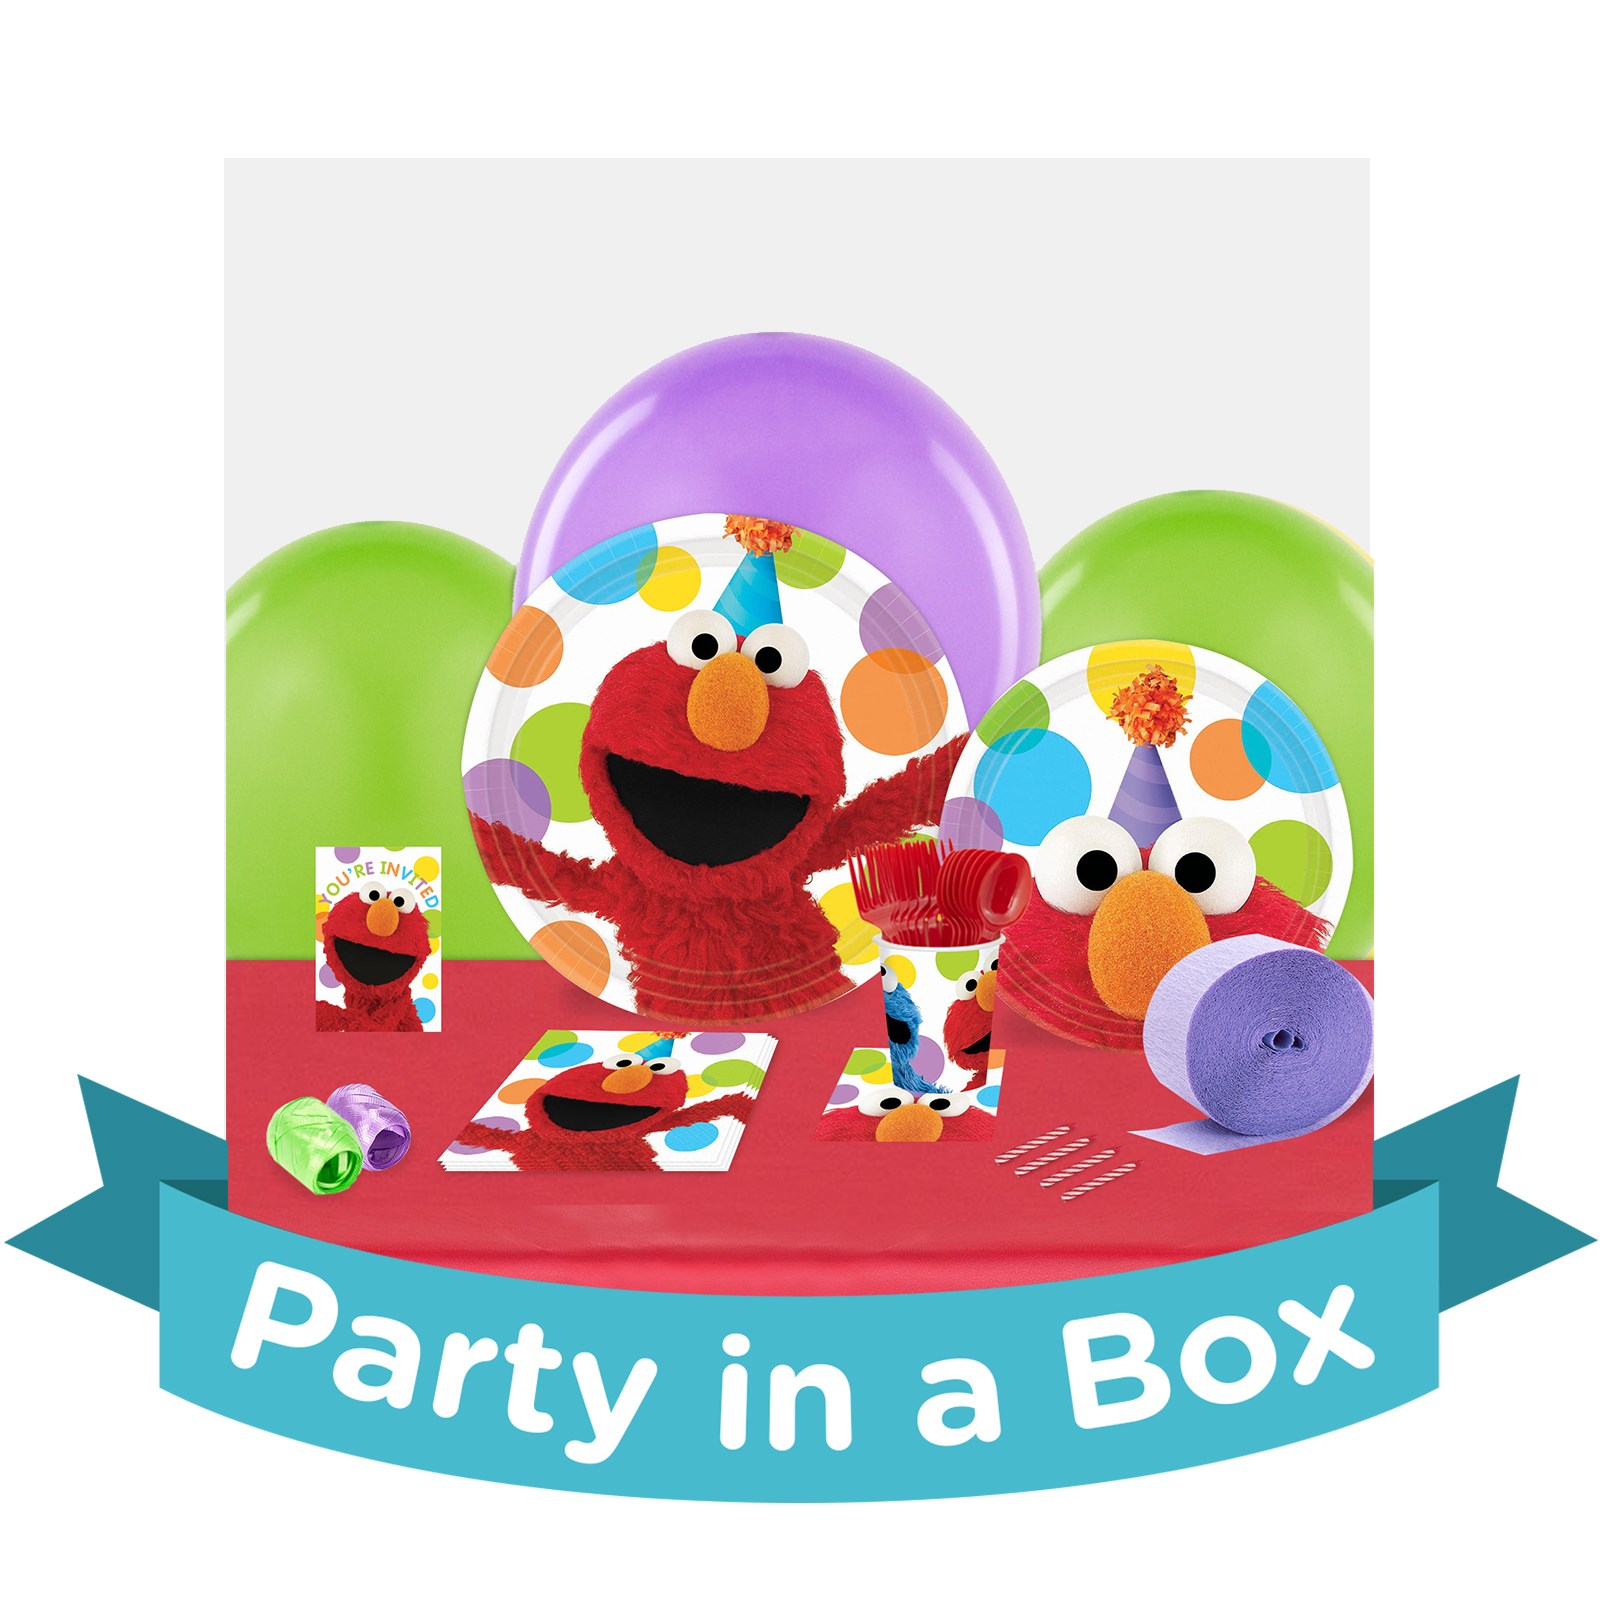 Sesame Street Elmo Party in a Box - Deluxe w/ Favors - 16 Guests